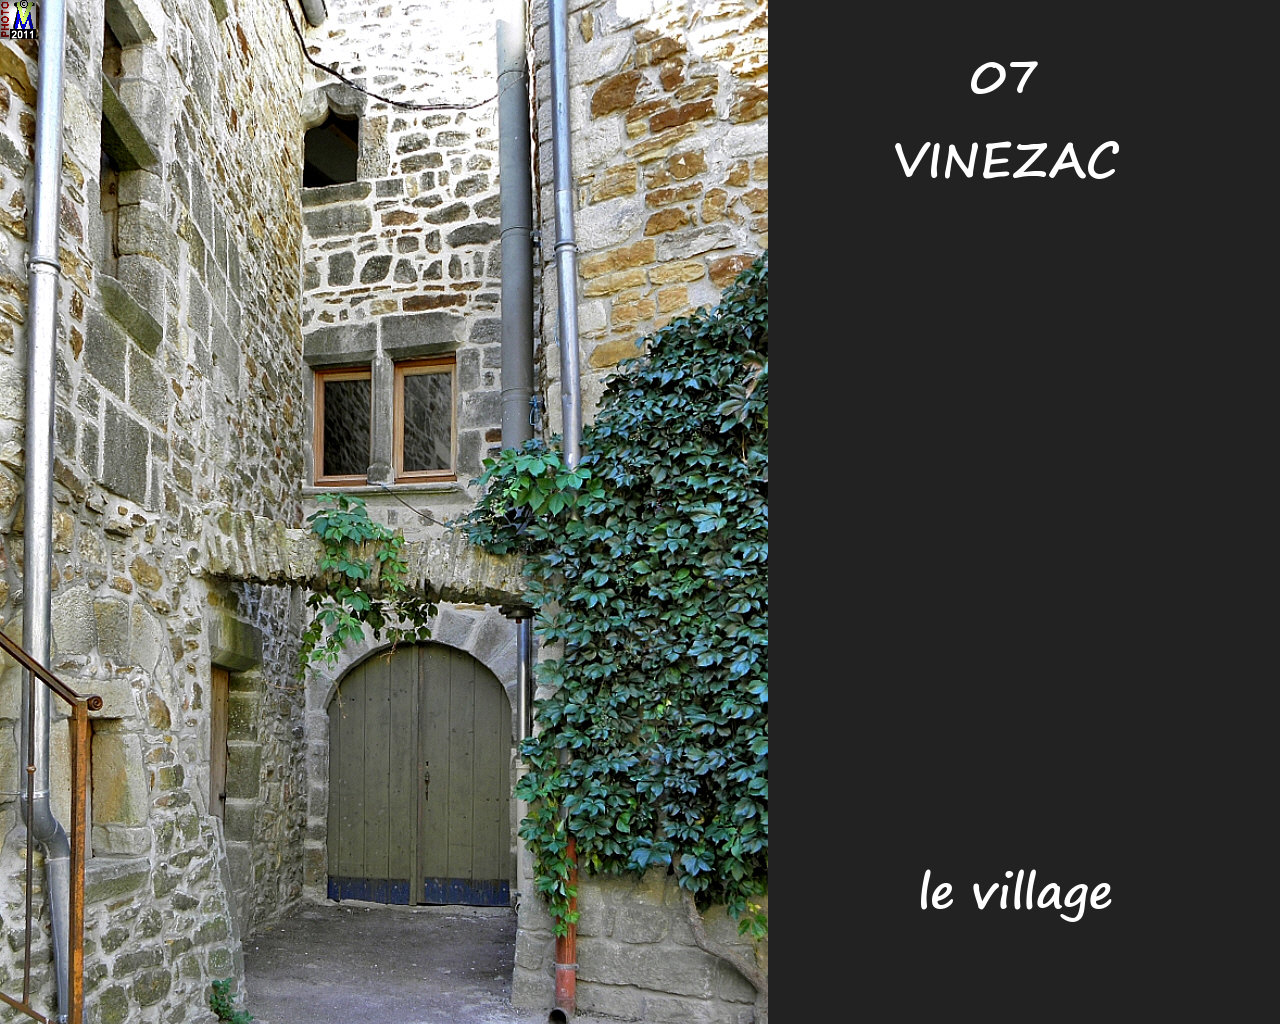 07VINEZAC_village_166.jpg